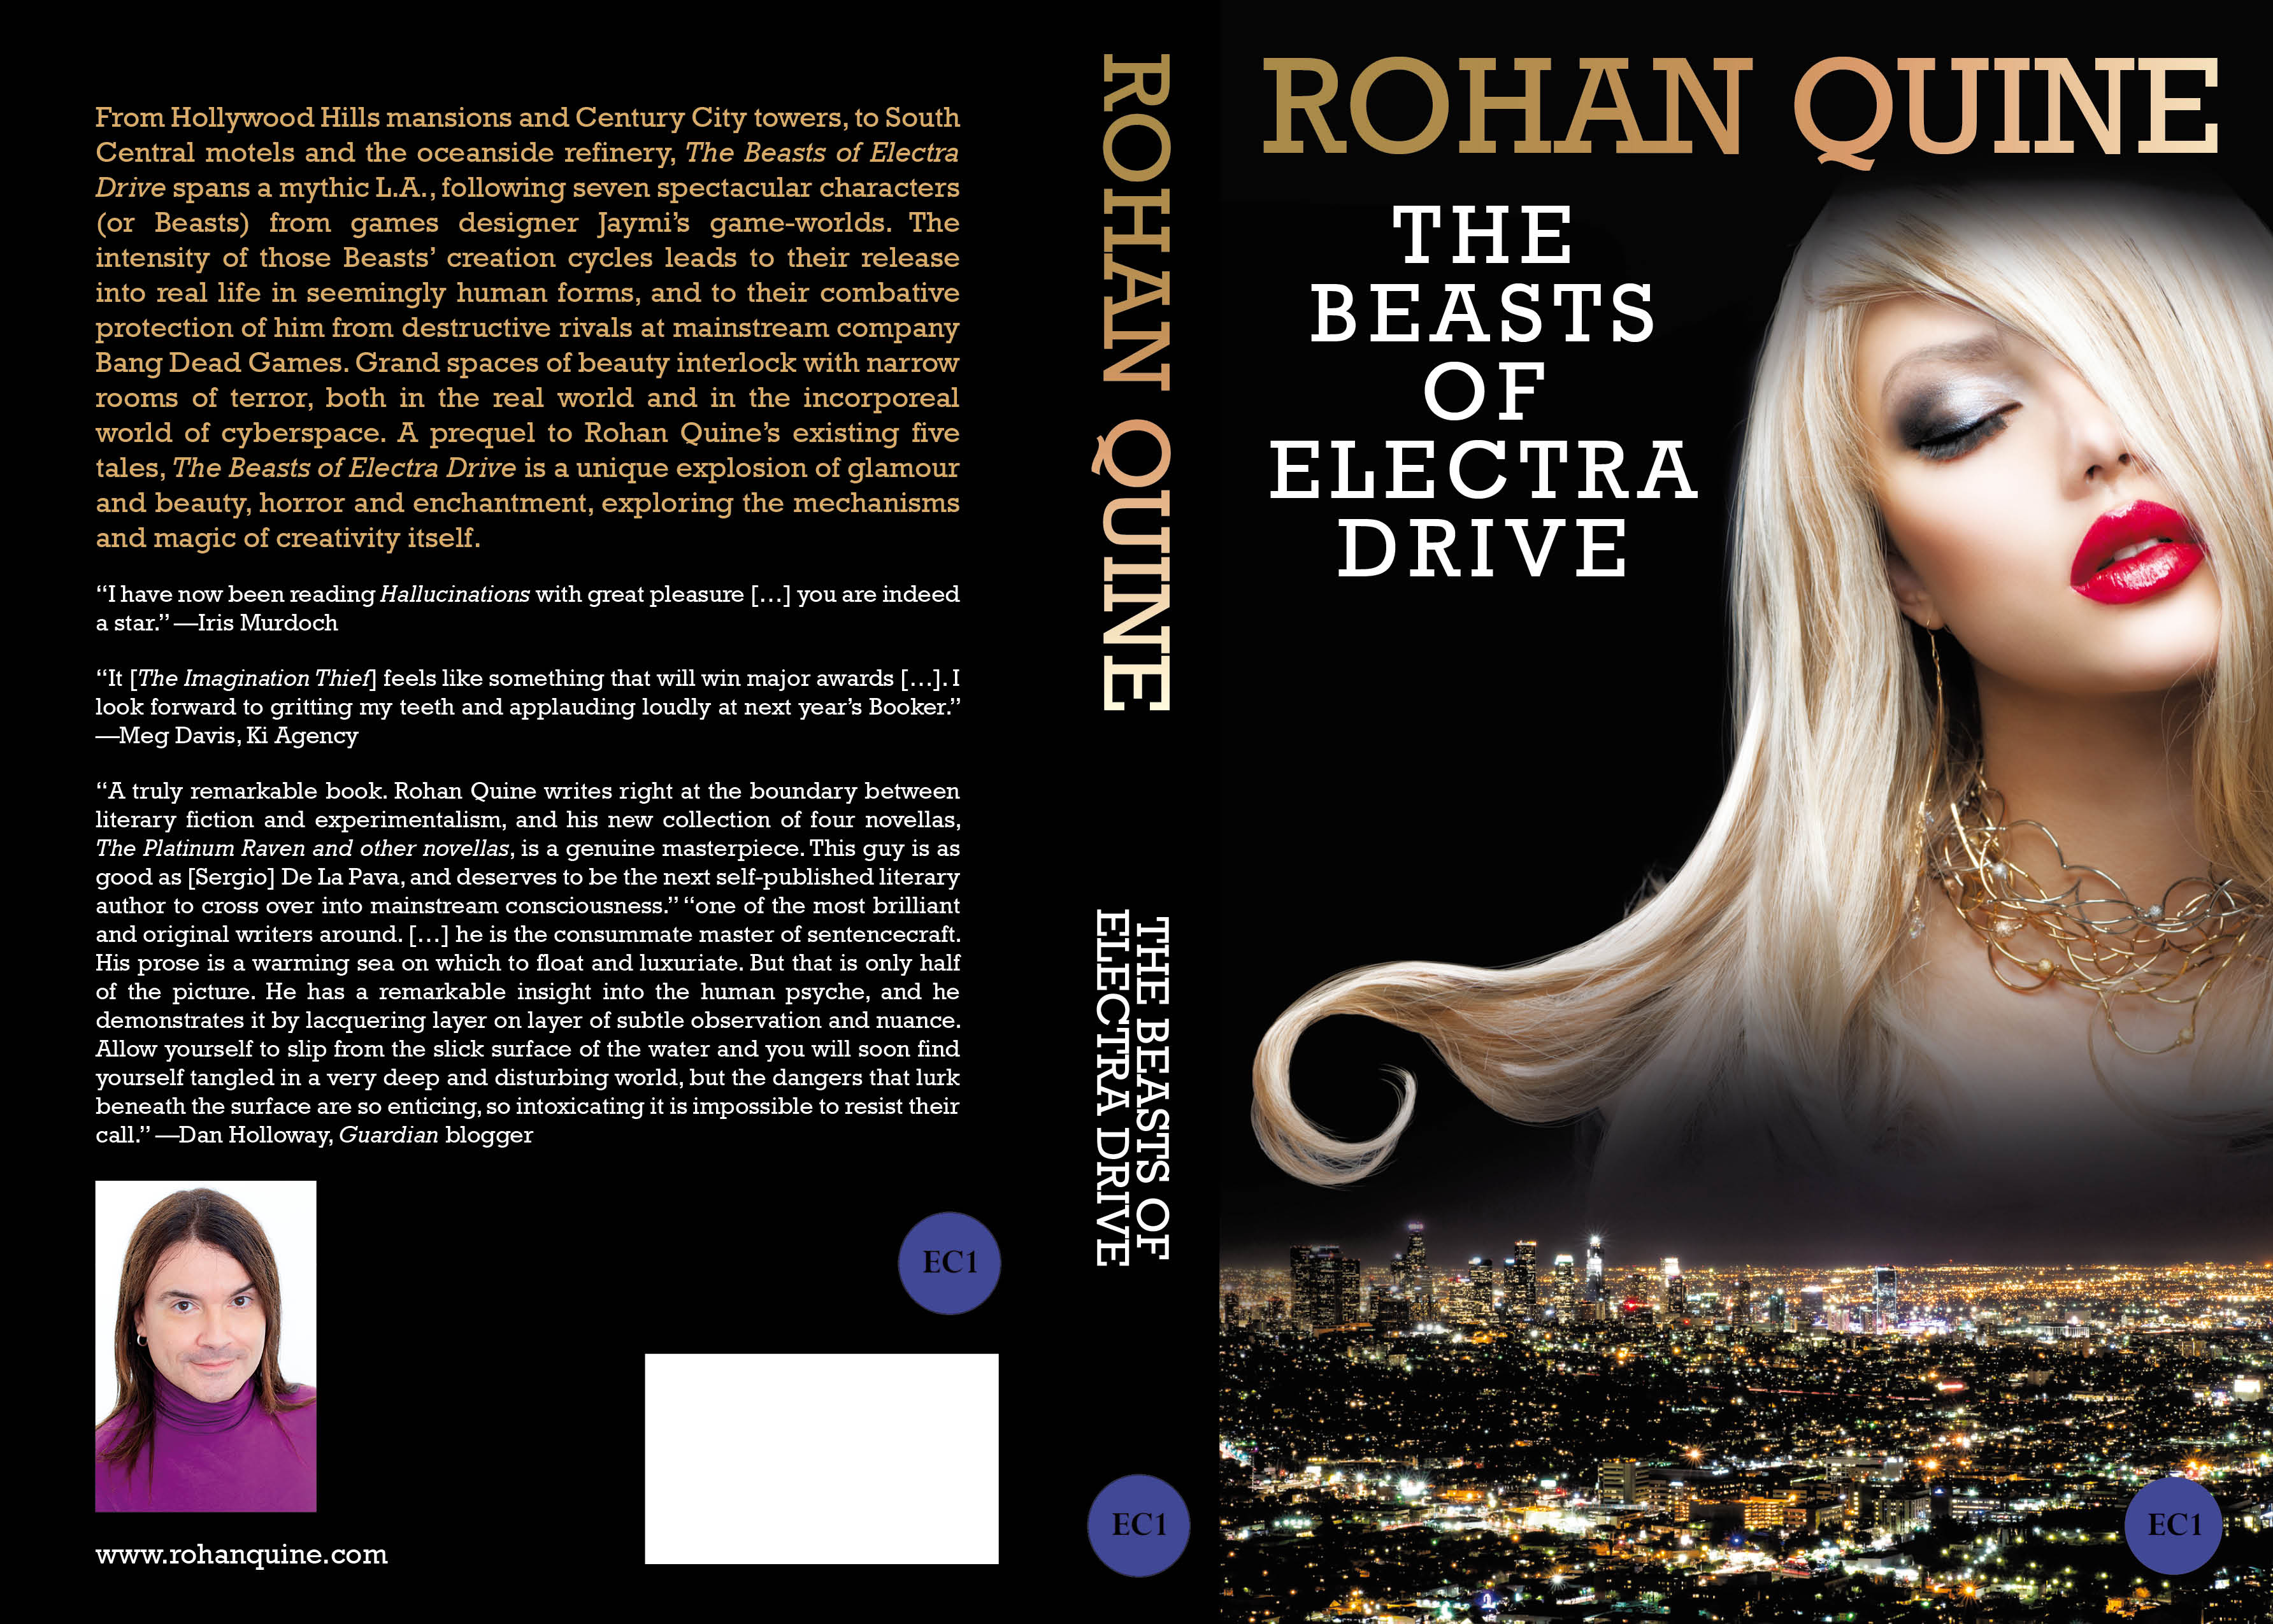 THE BEASTS OF ELECTRA DRIVE (novel) by Rohan Quine - paperback full cover - literary fiction with a touch of magical realsim and a dusting of horror (literary fiction, magical realism, horror)